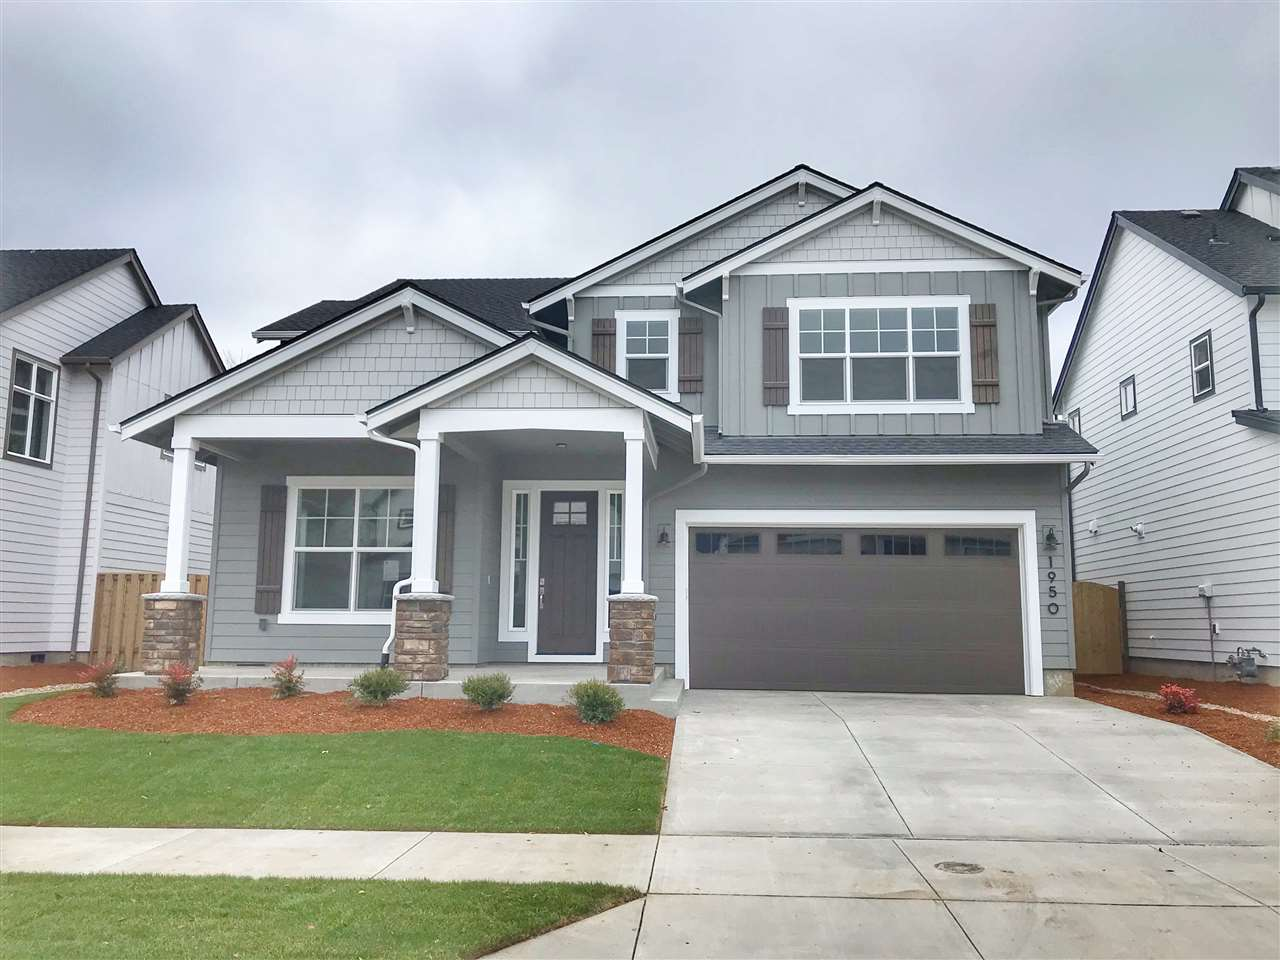 """Brand New Construction by Legend Homes & beautiful new Corvallis neighborhood. Move-in ready today. The """"Moreland"""". Desirable floorplan inc. spacious open flrplan, gracious kitchen with large pantry & dining rm, 4 bedrooms with a main floor guest suite/den & bonus/media room. The gracious MBR suite incl. freestanding soaking tub, tiled shower, huge closet and more. Beautiful and spacious for sure. Many model homes open Sat-Sun 11-3. Backyard landscaping & select privacy window coverings included."""